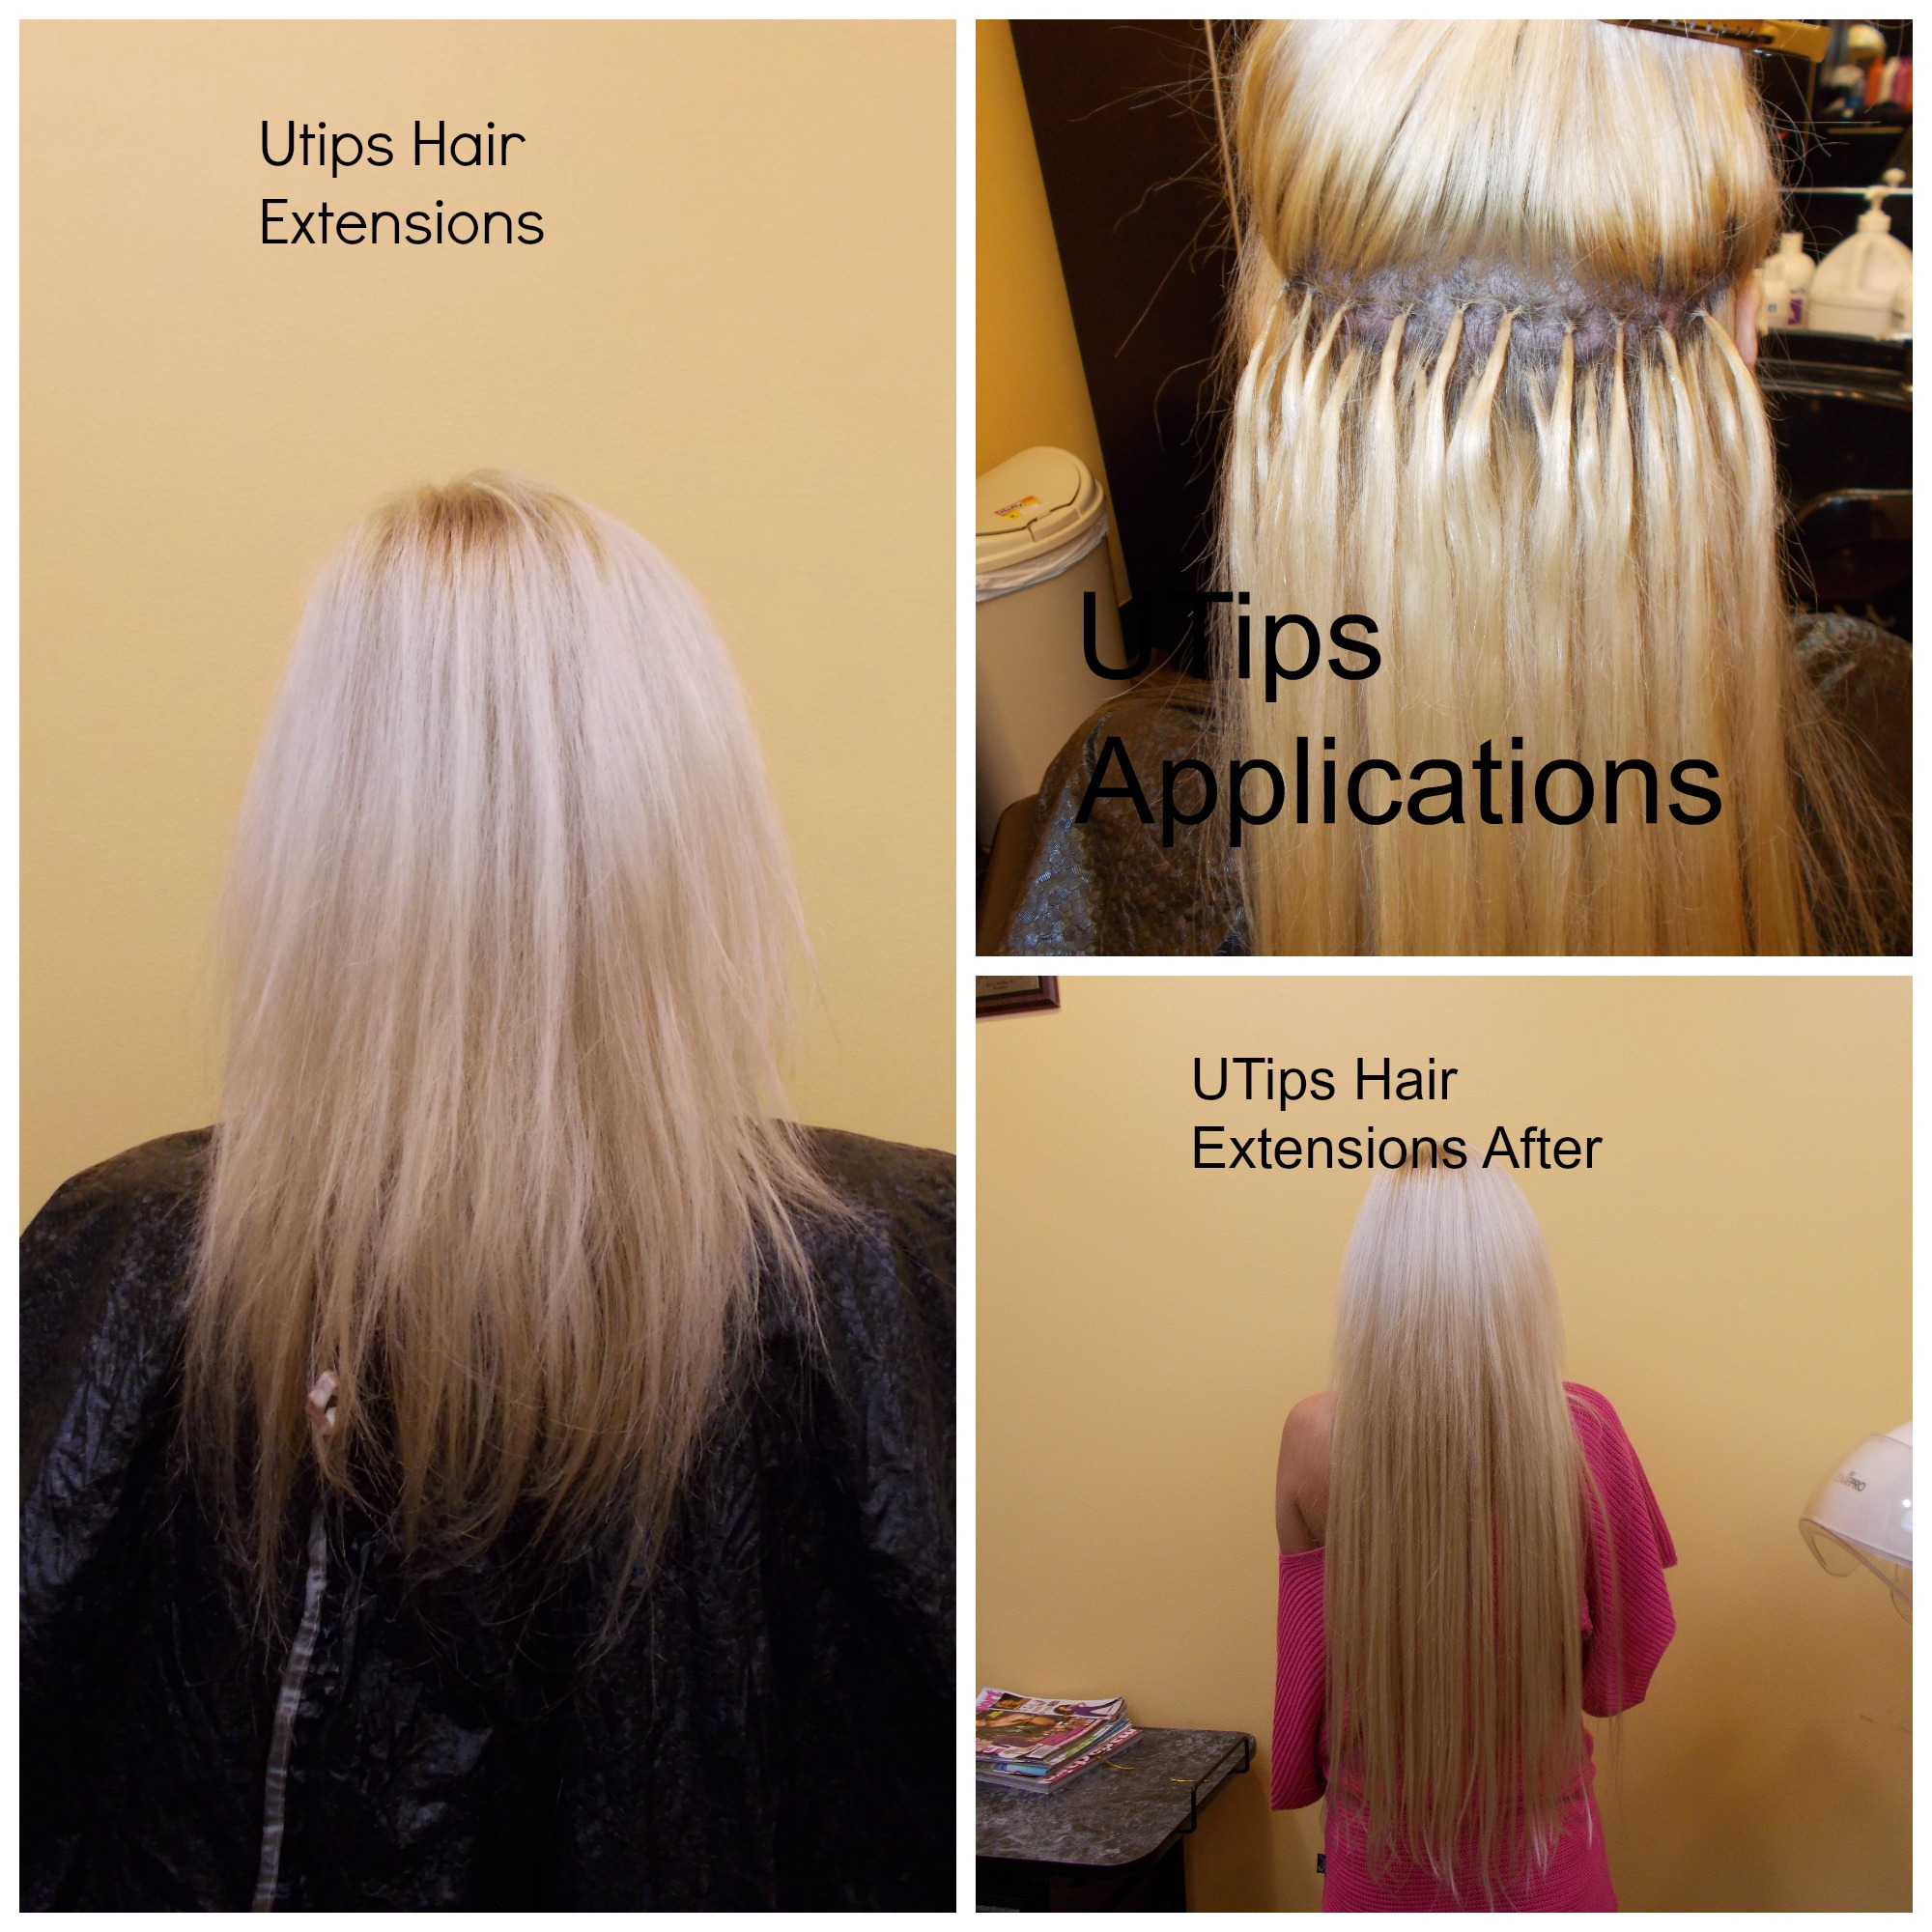 Orlando Hair Salon Now Offers Utips Hair Extensions Newswire